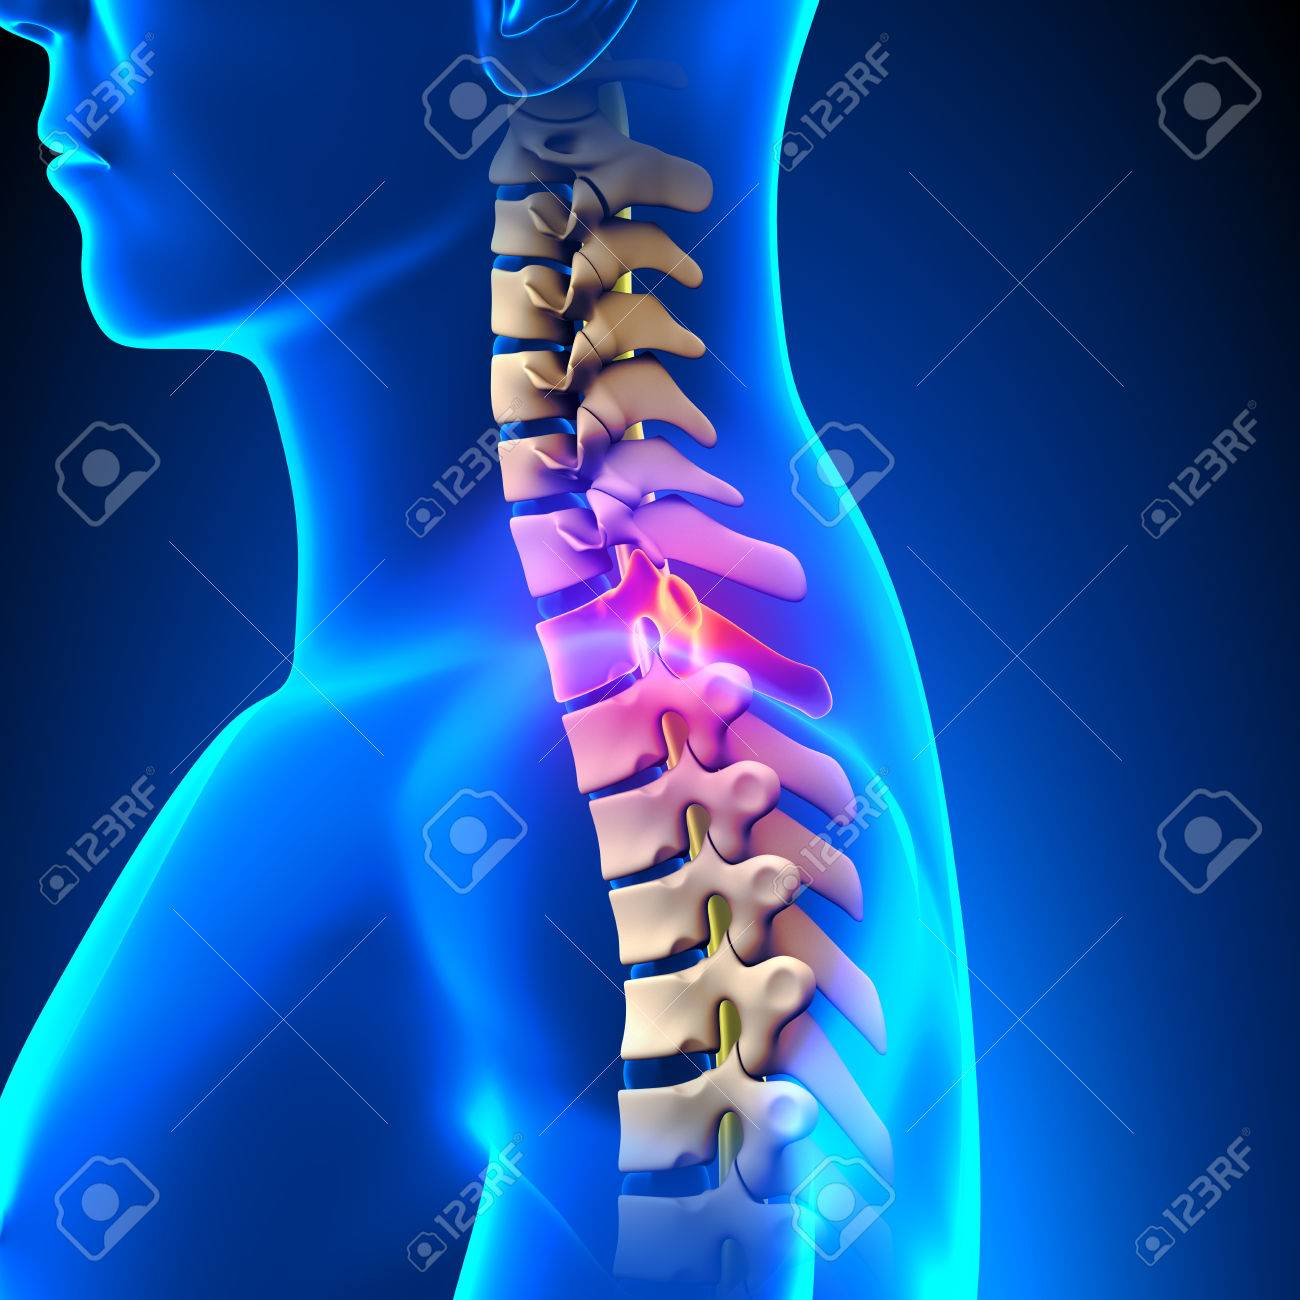 T1 Disc Thoracic Spine Anatomy Stock Photo Picture And Royalty